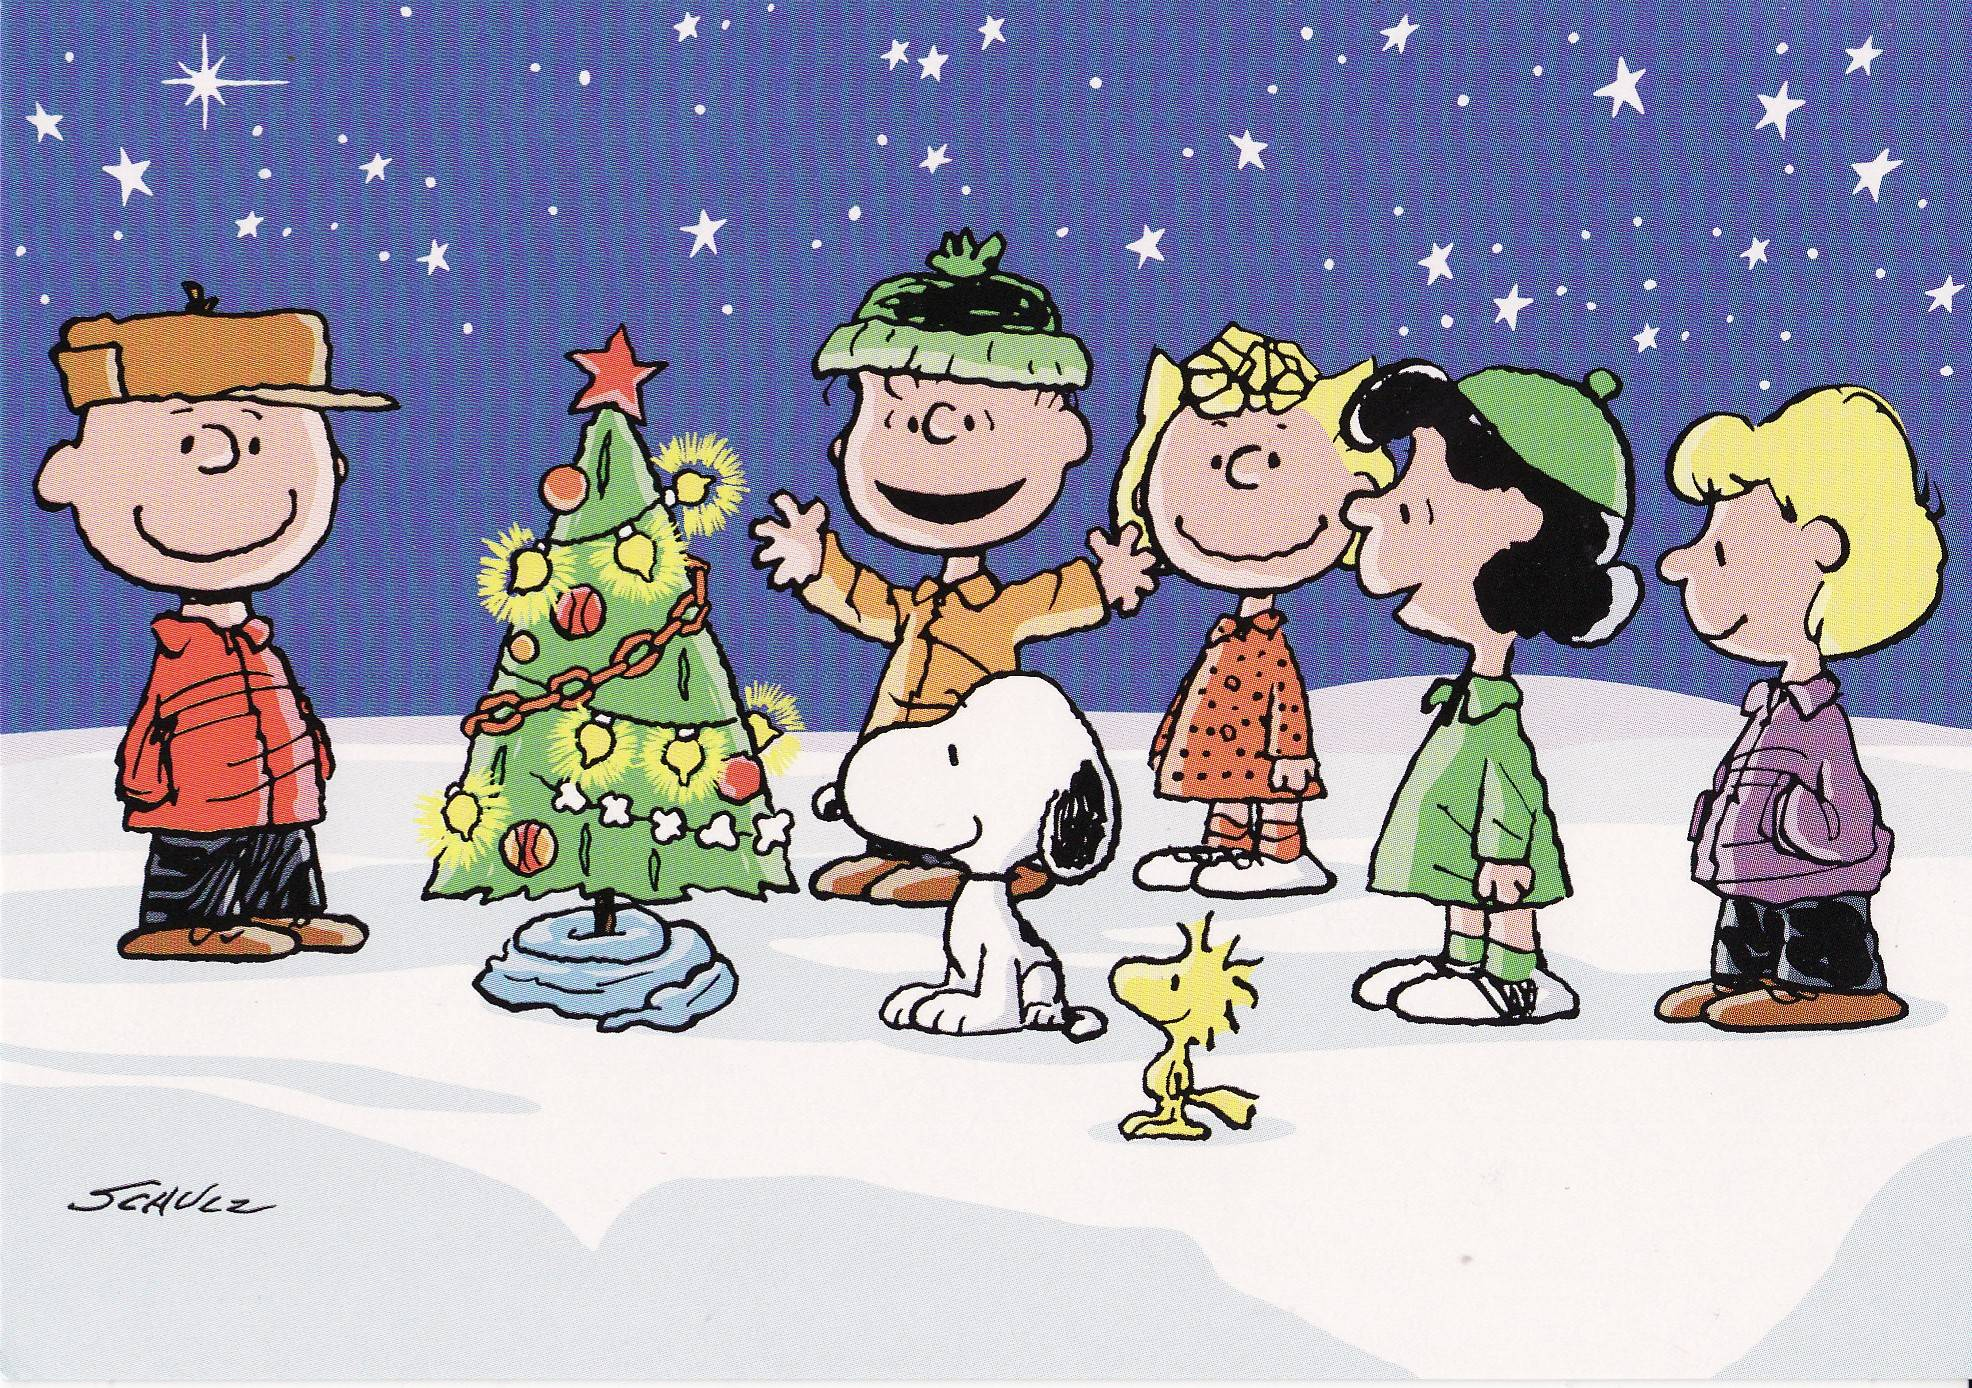 winter wallpaper charlie brown - photo #6